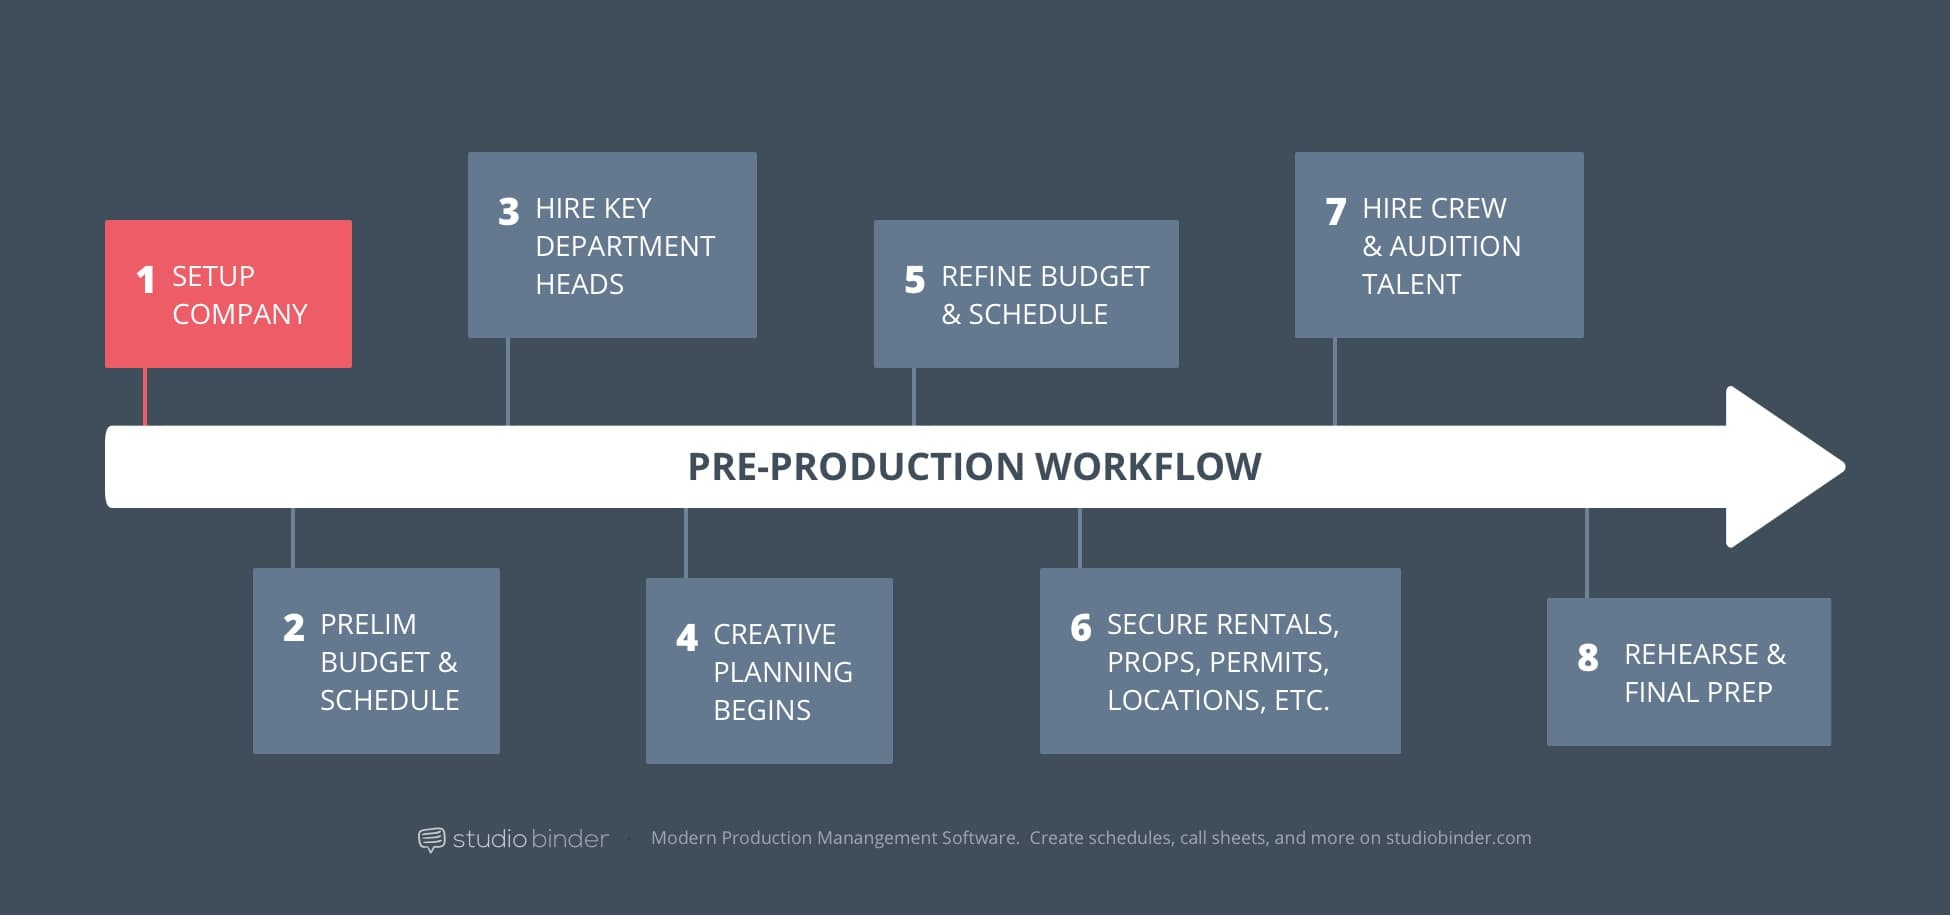 1 - StudioBinder Pre-Production Workflow - Setup Production Company